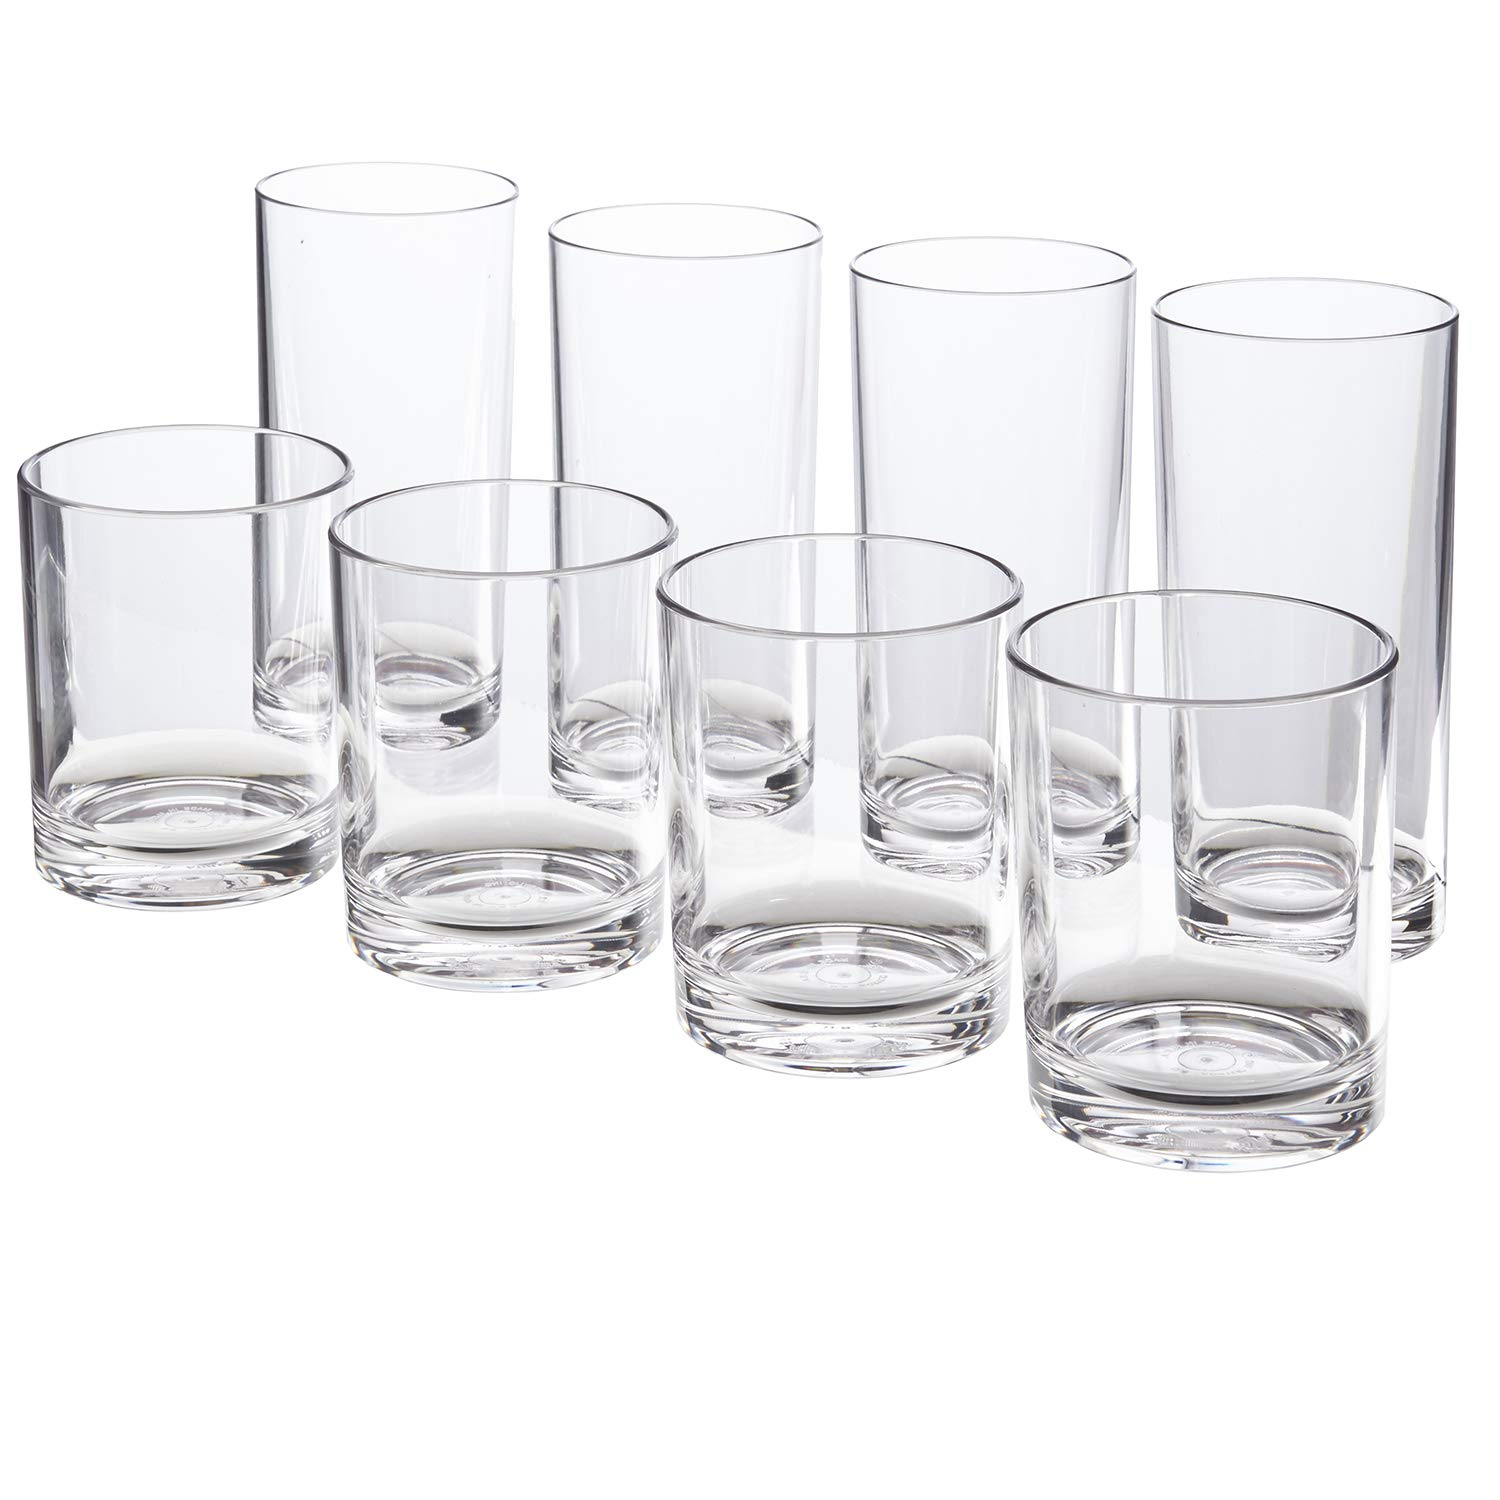 Classic 8-piece Premium Quality Plastic Tumblers   4 each: 12-ounce and 16-ounce Clear